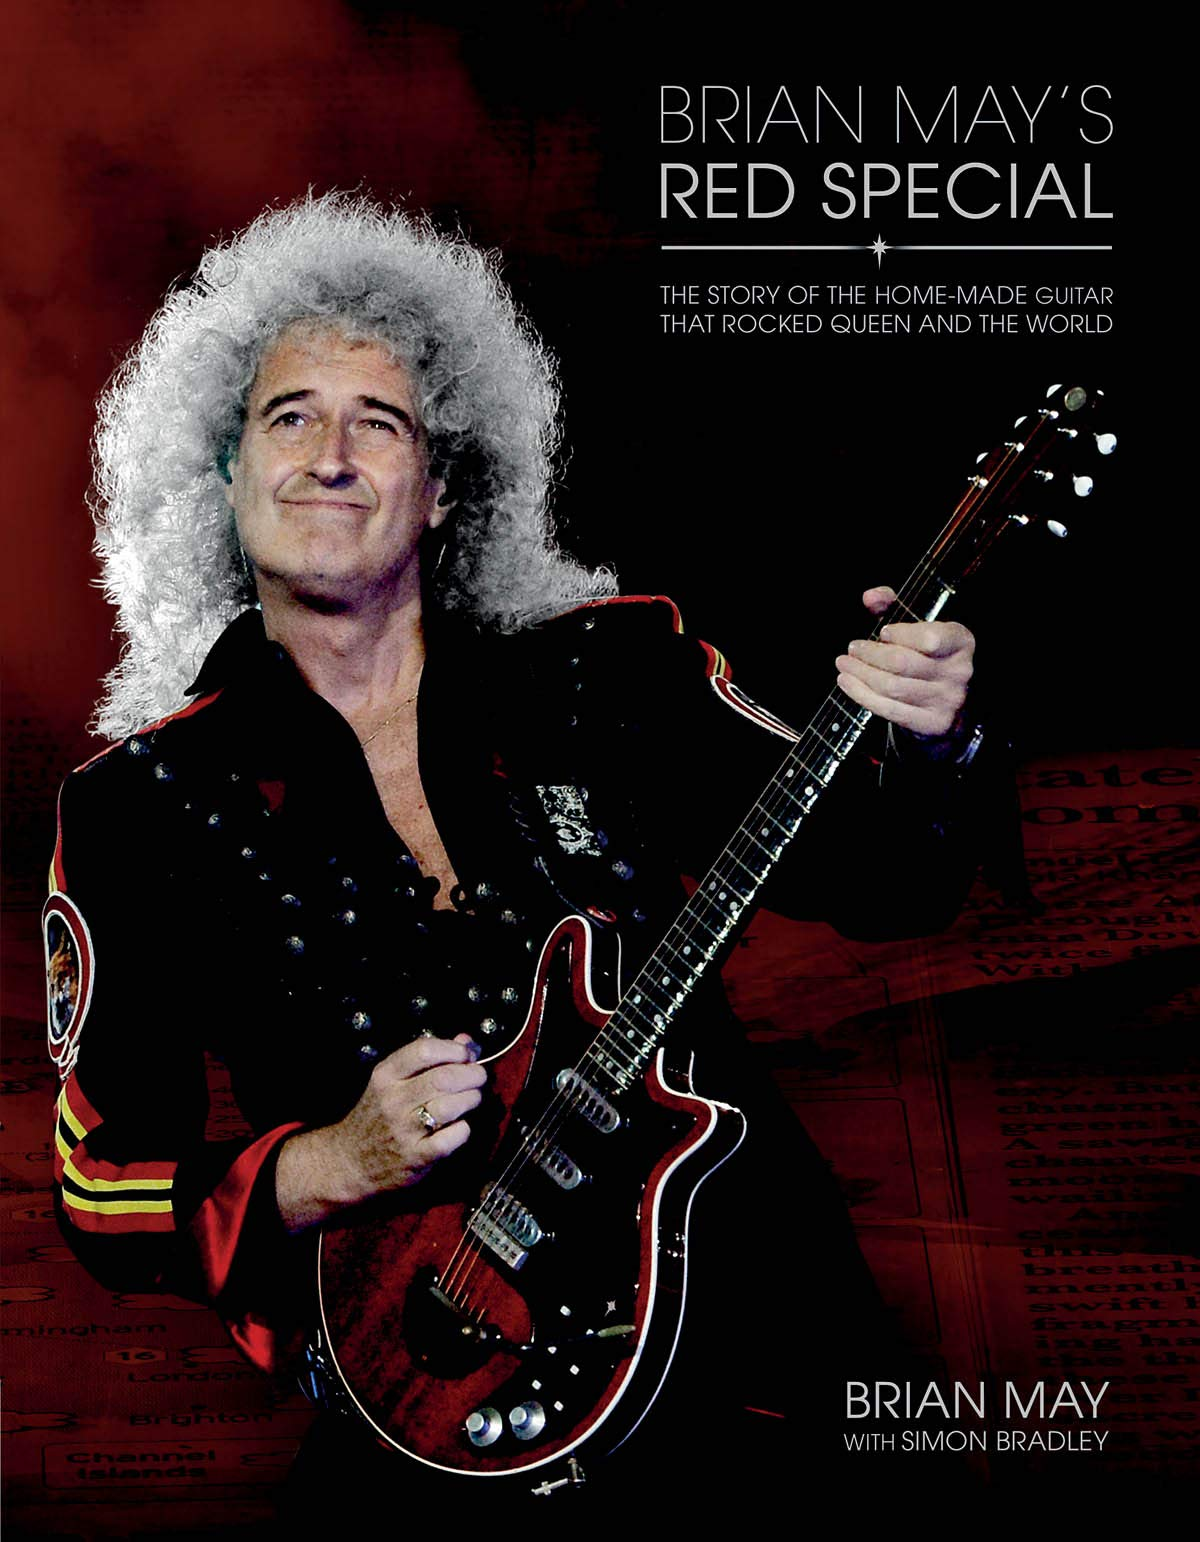 Brian Mays Red Special: The Story of the Home-made Guitar that Rocked Queen and the World: Amazon.es: Brian May: Libros en idiomas extranjeros